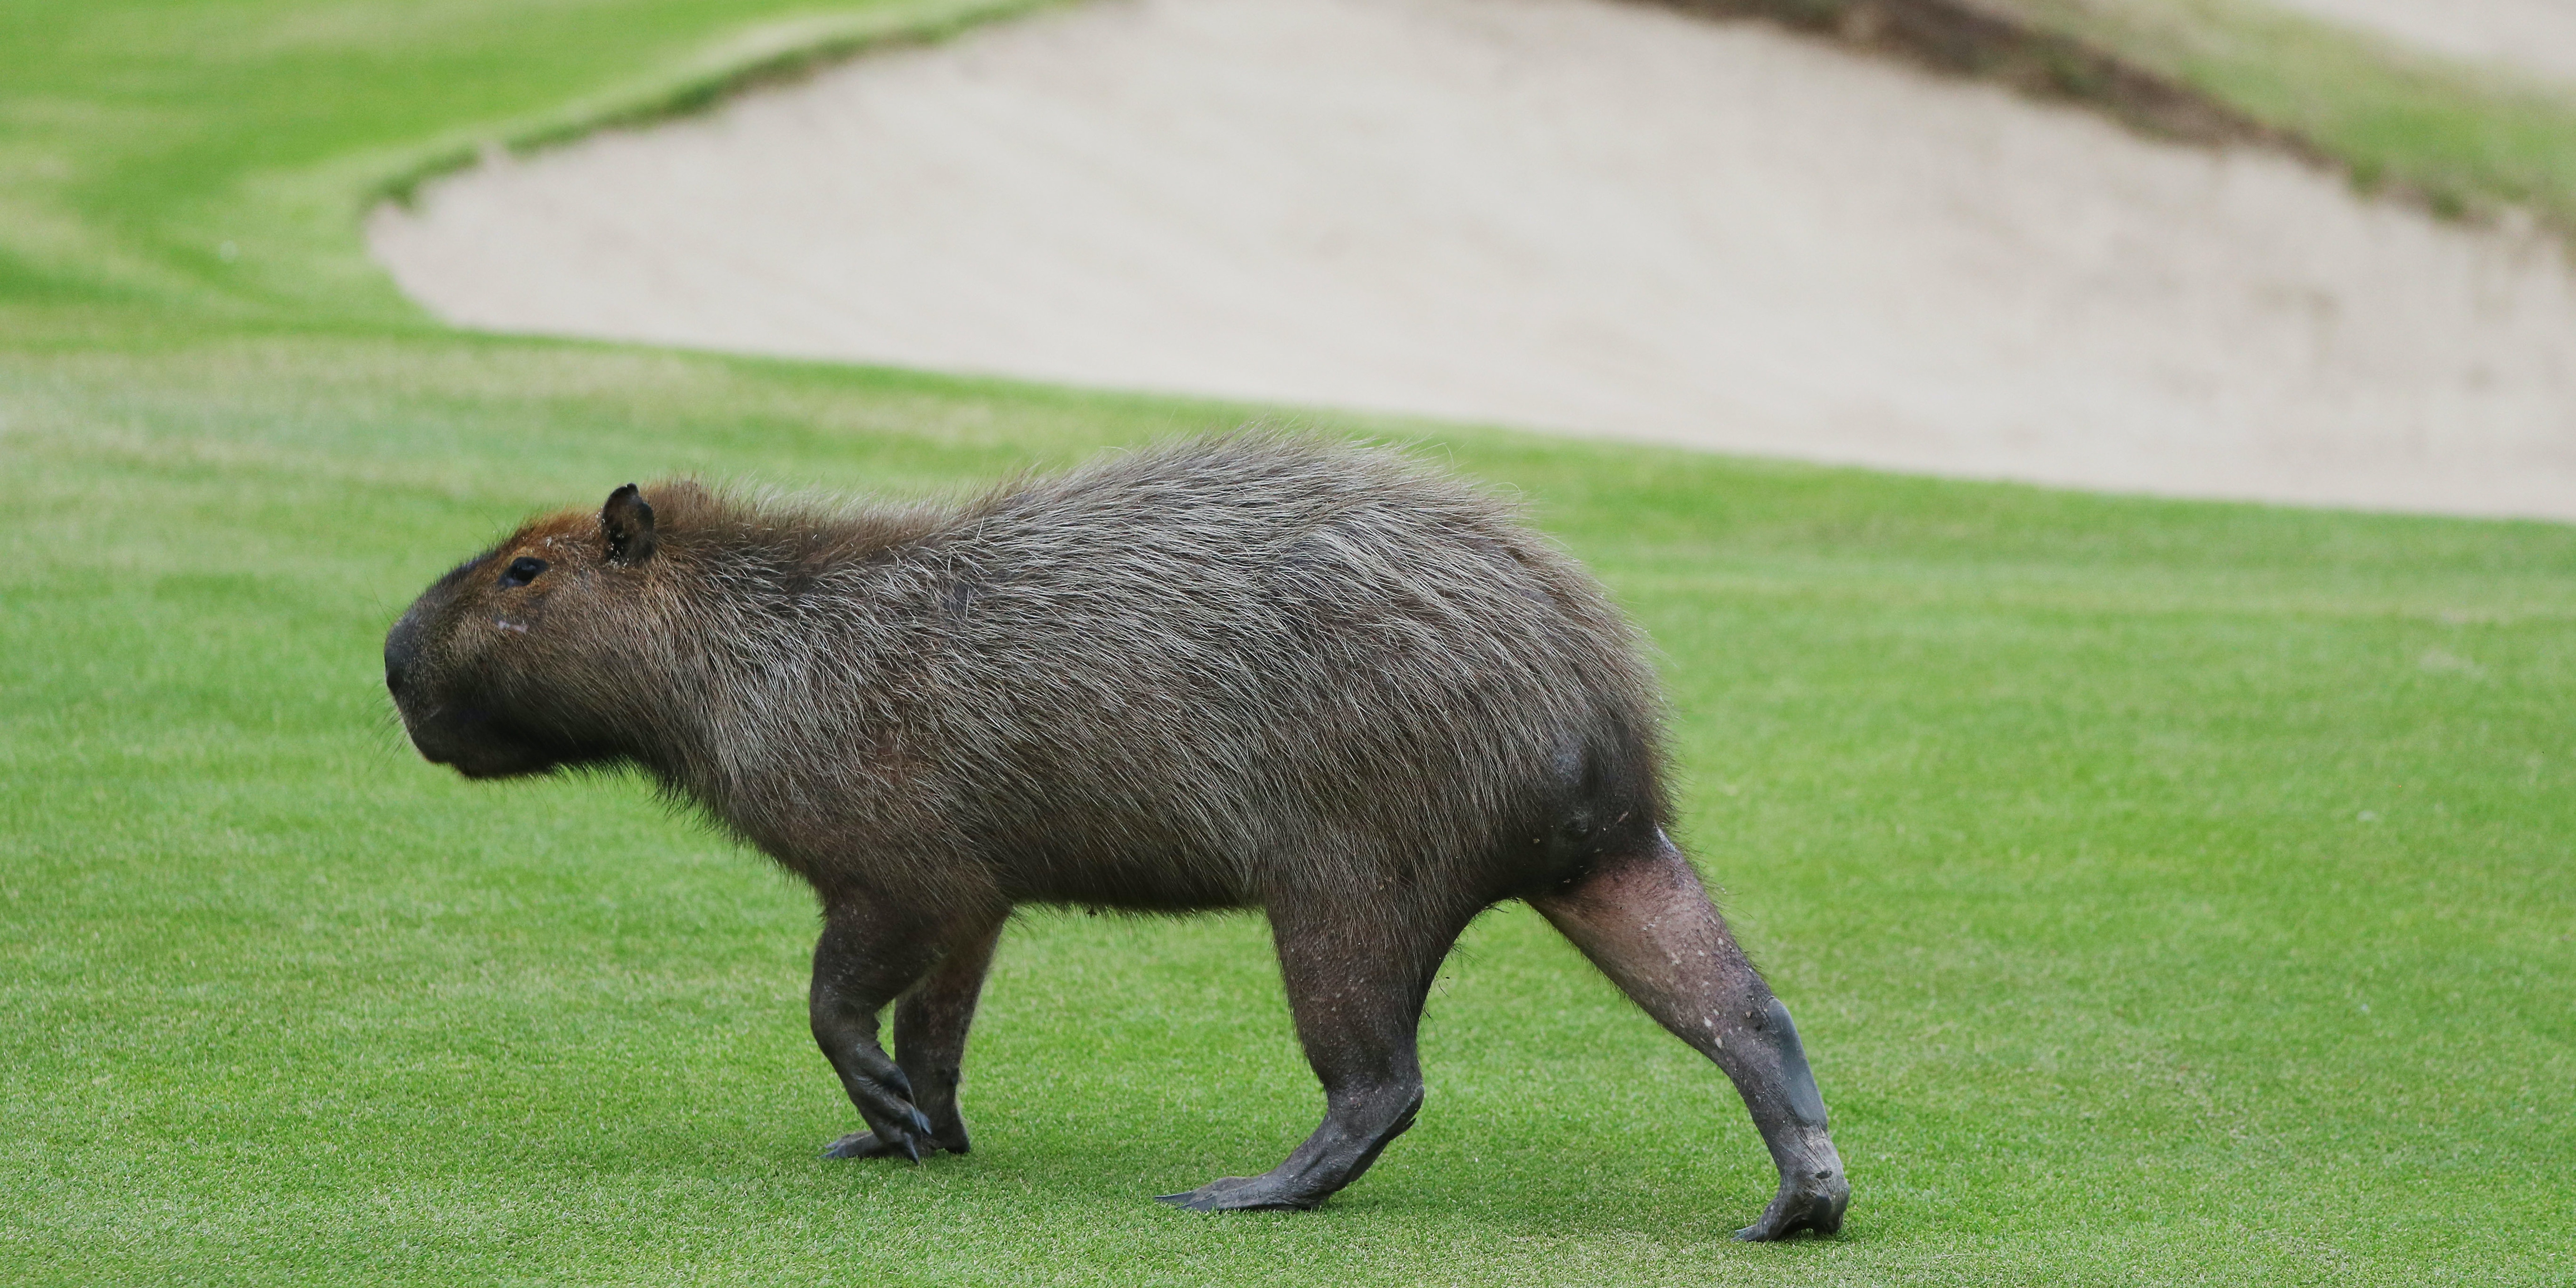 RIO DE JANEIRO, BRAZIL - AUGUST 08:  A capybara crosses a fairway during a practice round during Day 3 of the Rio 2016 Olympic Games at Olympic Golf Course on August 8, 2016 in Rio de Janeiro, Brazil.  (Photo by Scott Halleran/Getty Images)